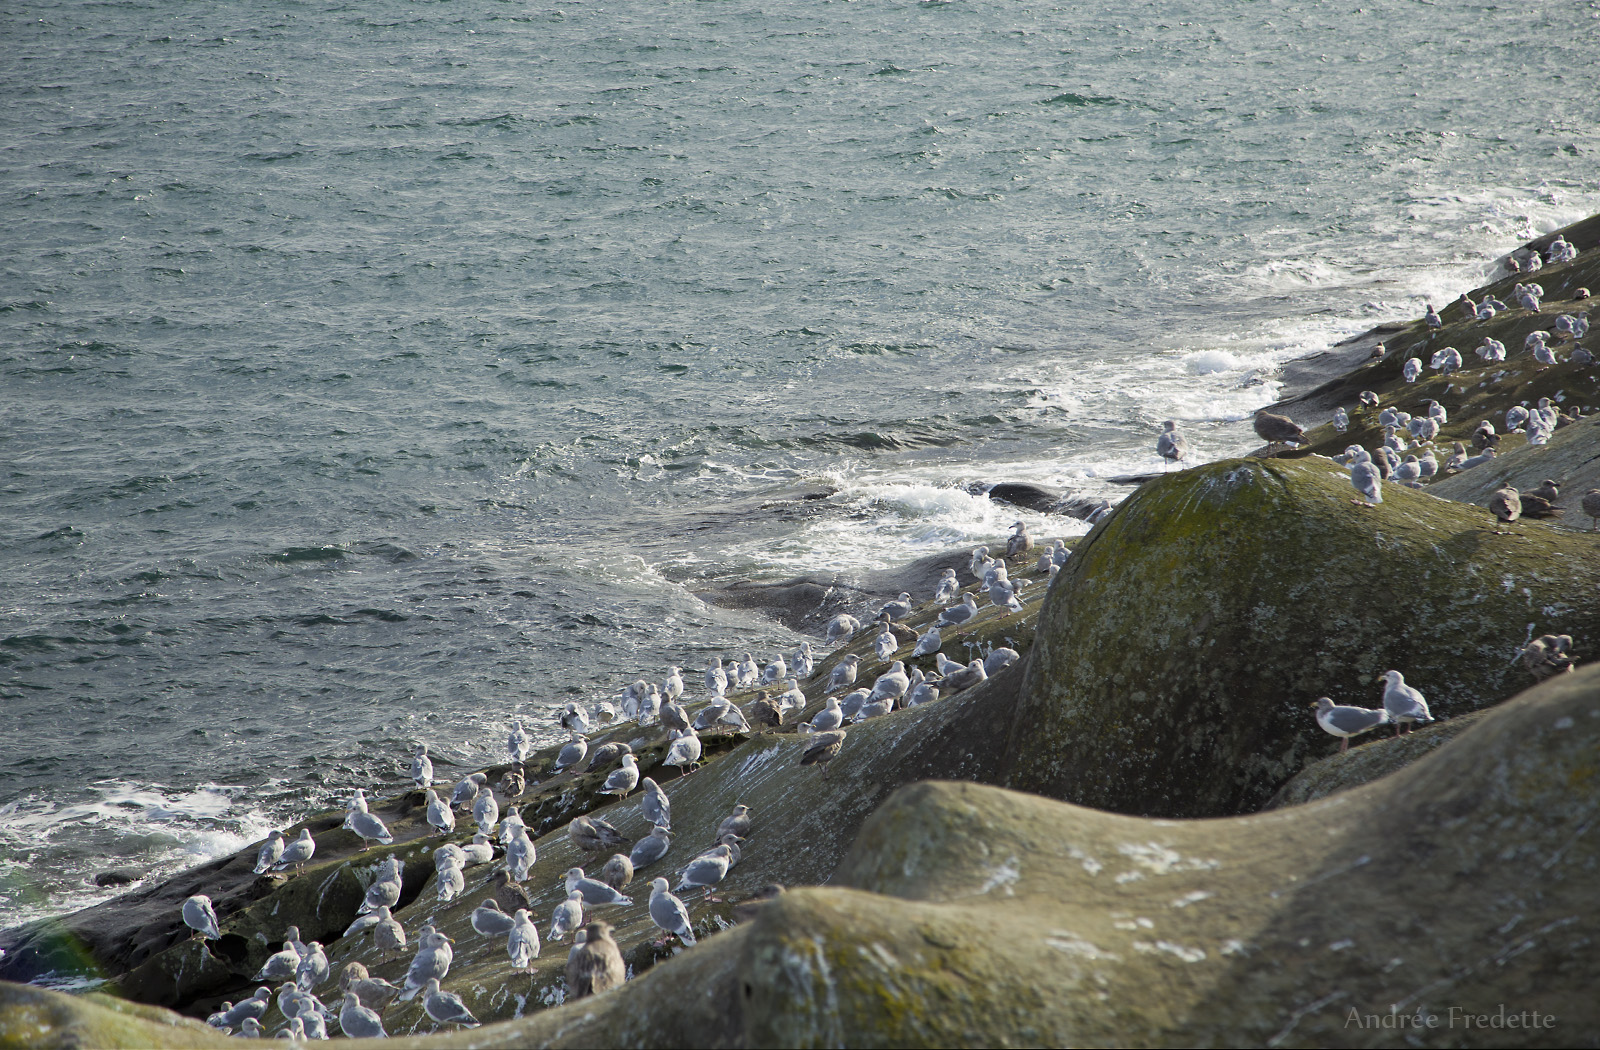 Gull convention at East Point, Saturna island. Photo by Andrée Fredette